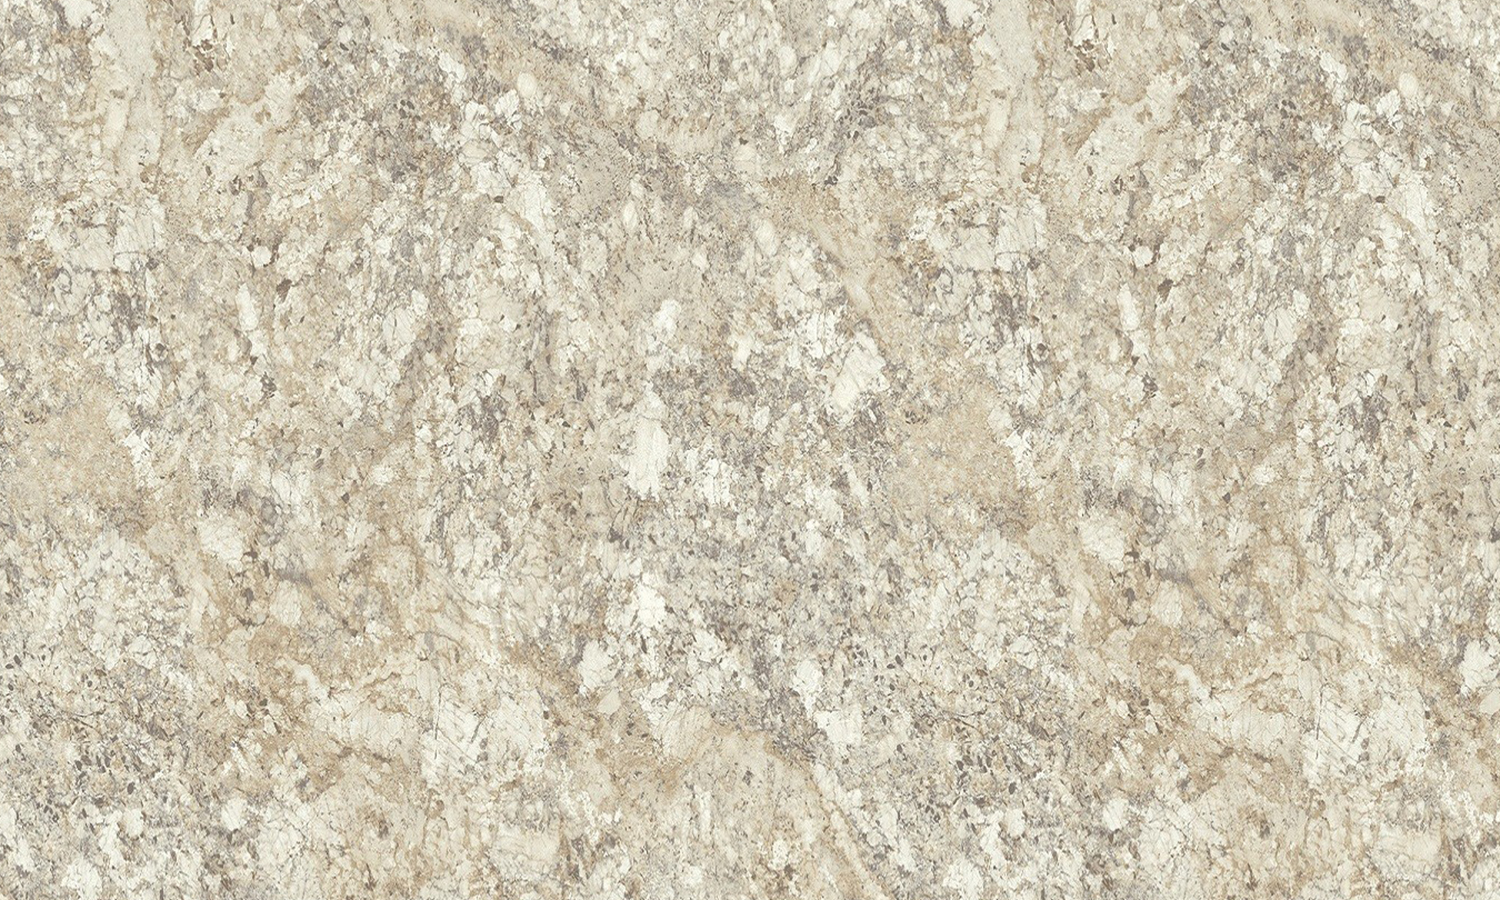 Aeon Worktop Spring Carnival 3600 x 600 x 38mm